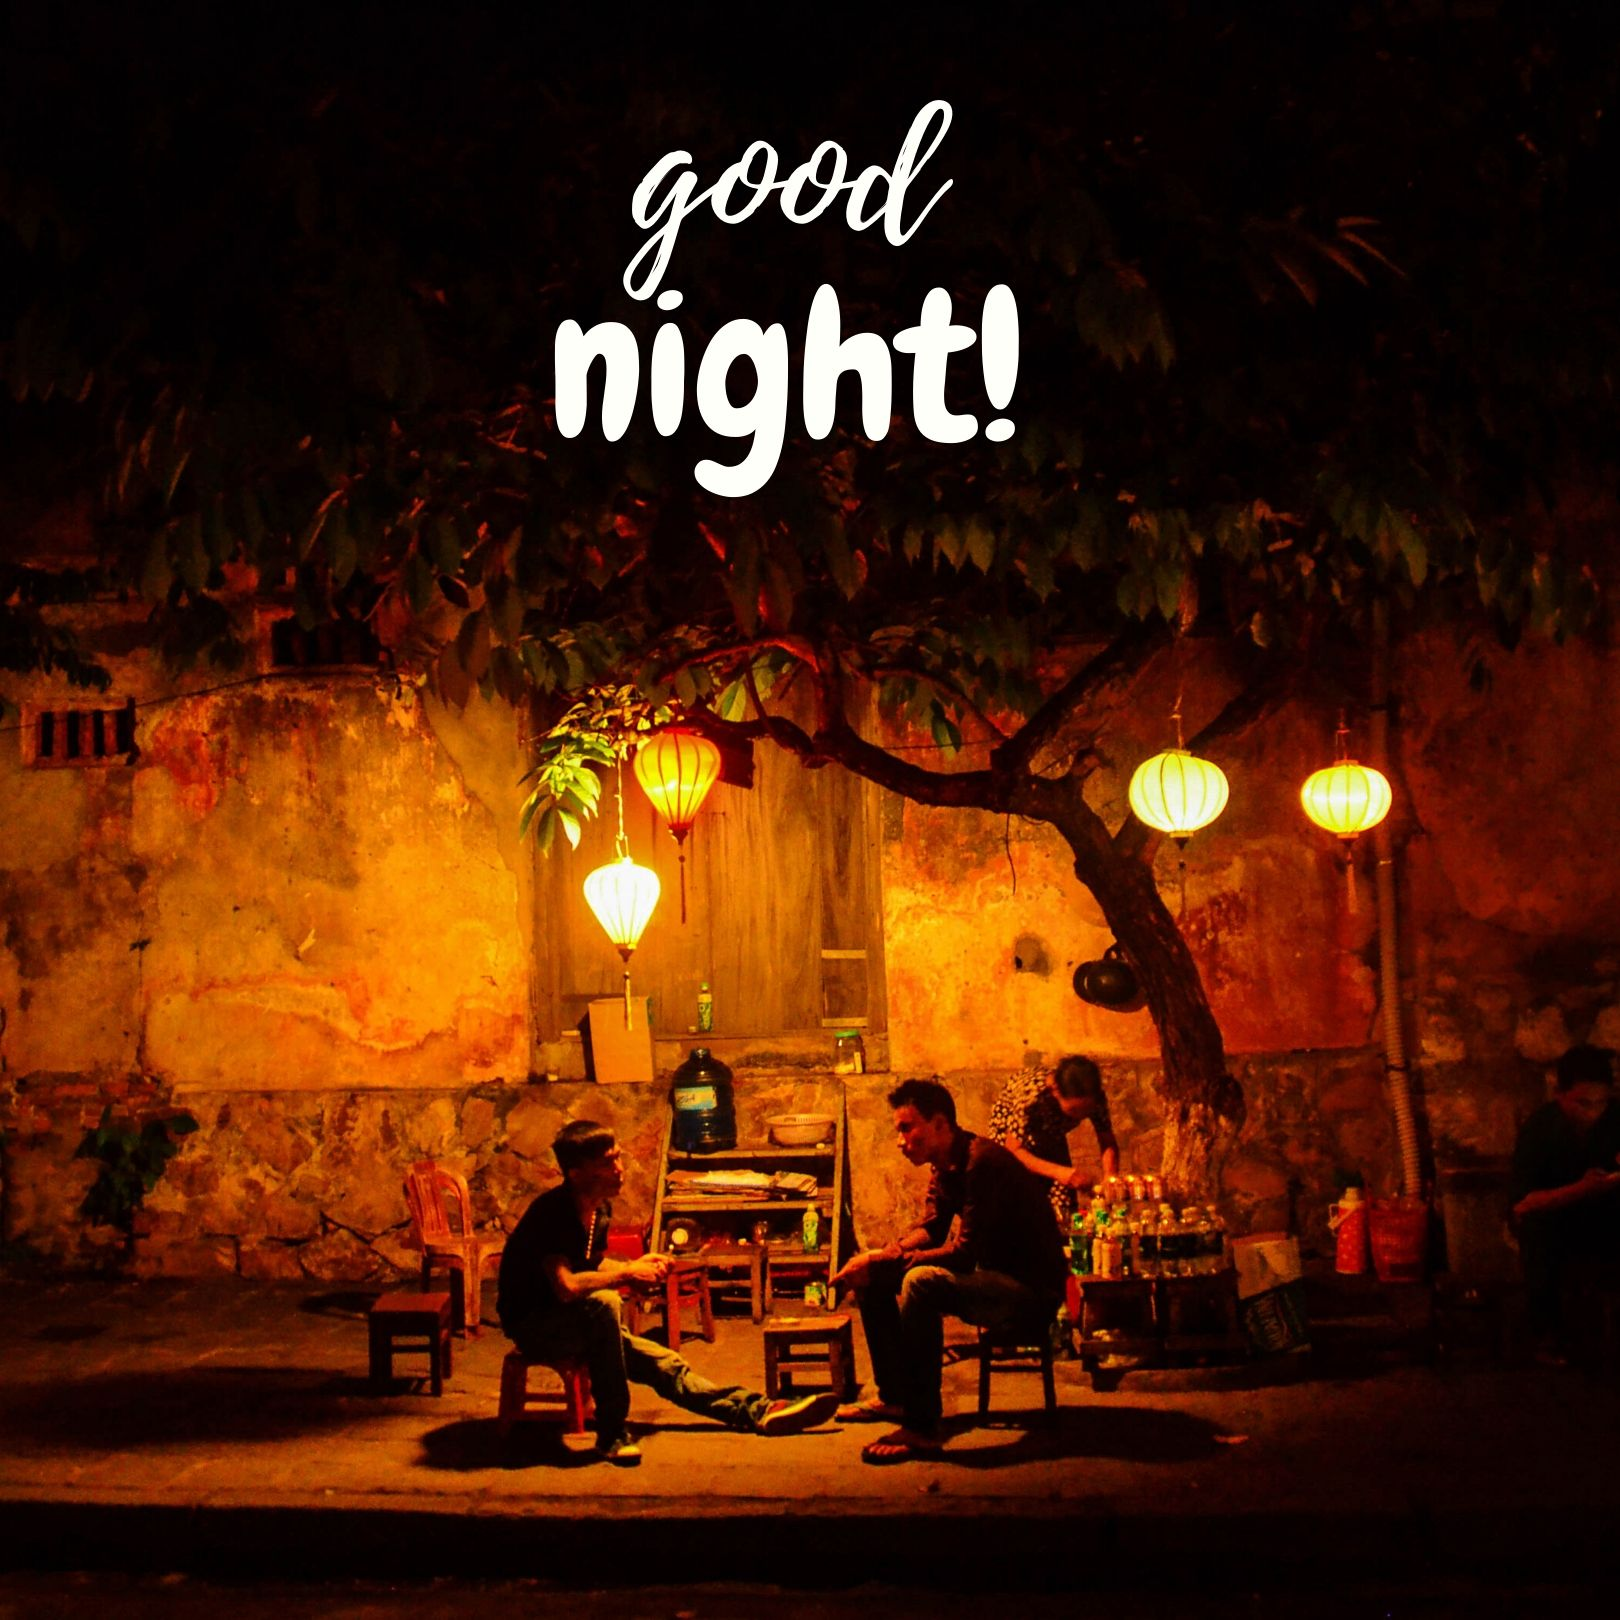 Good Night Image for best friend hd image full HD free download.